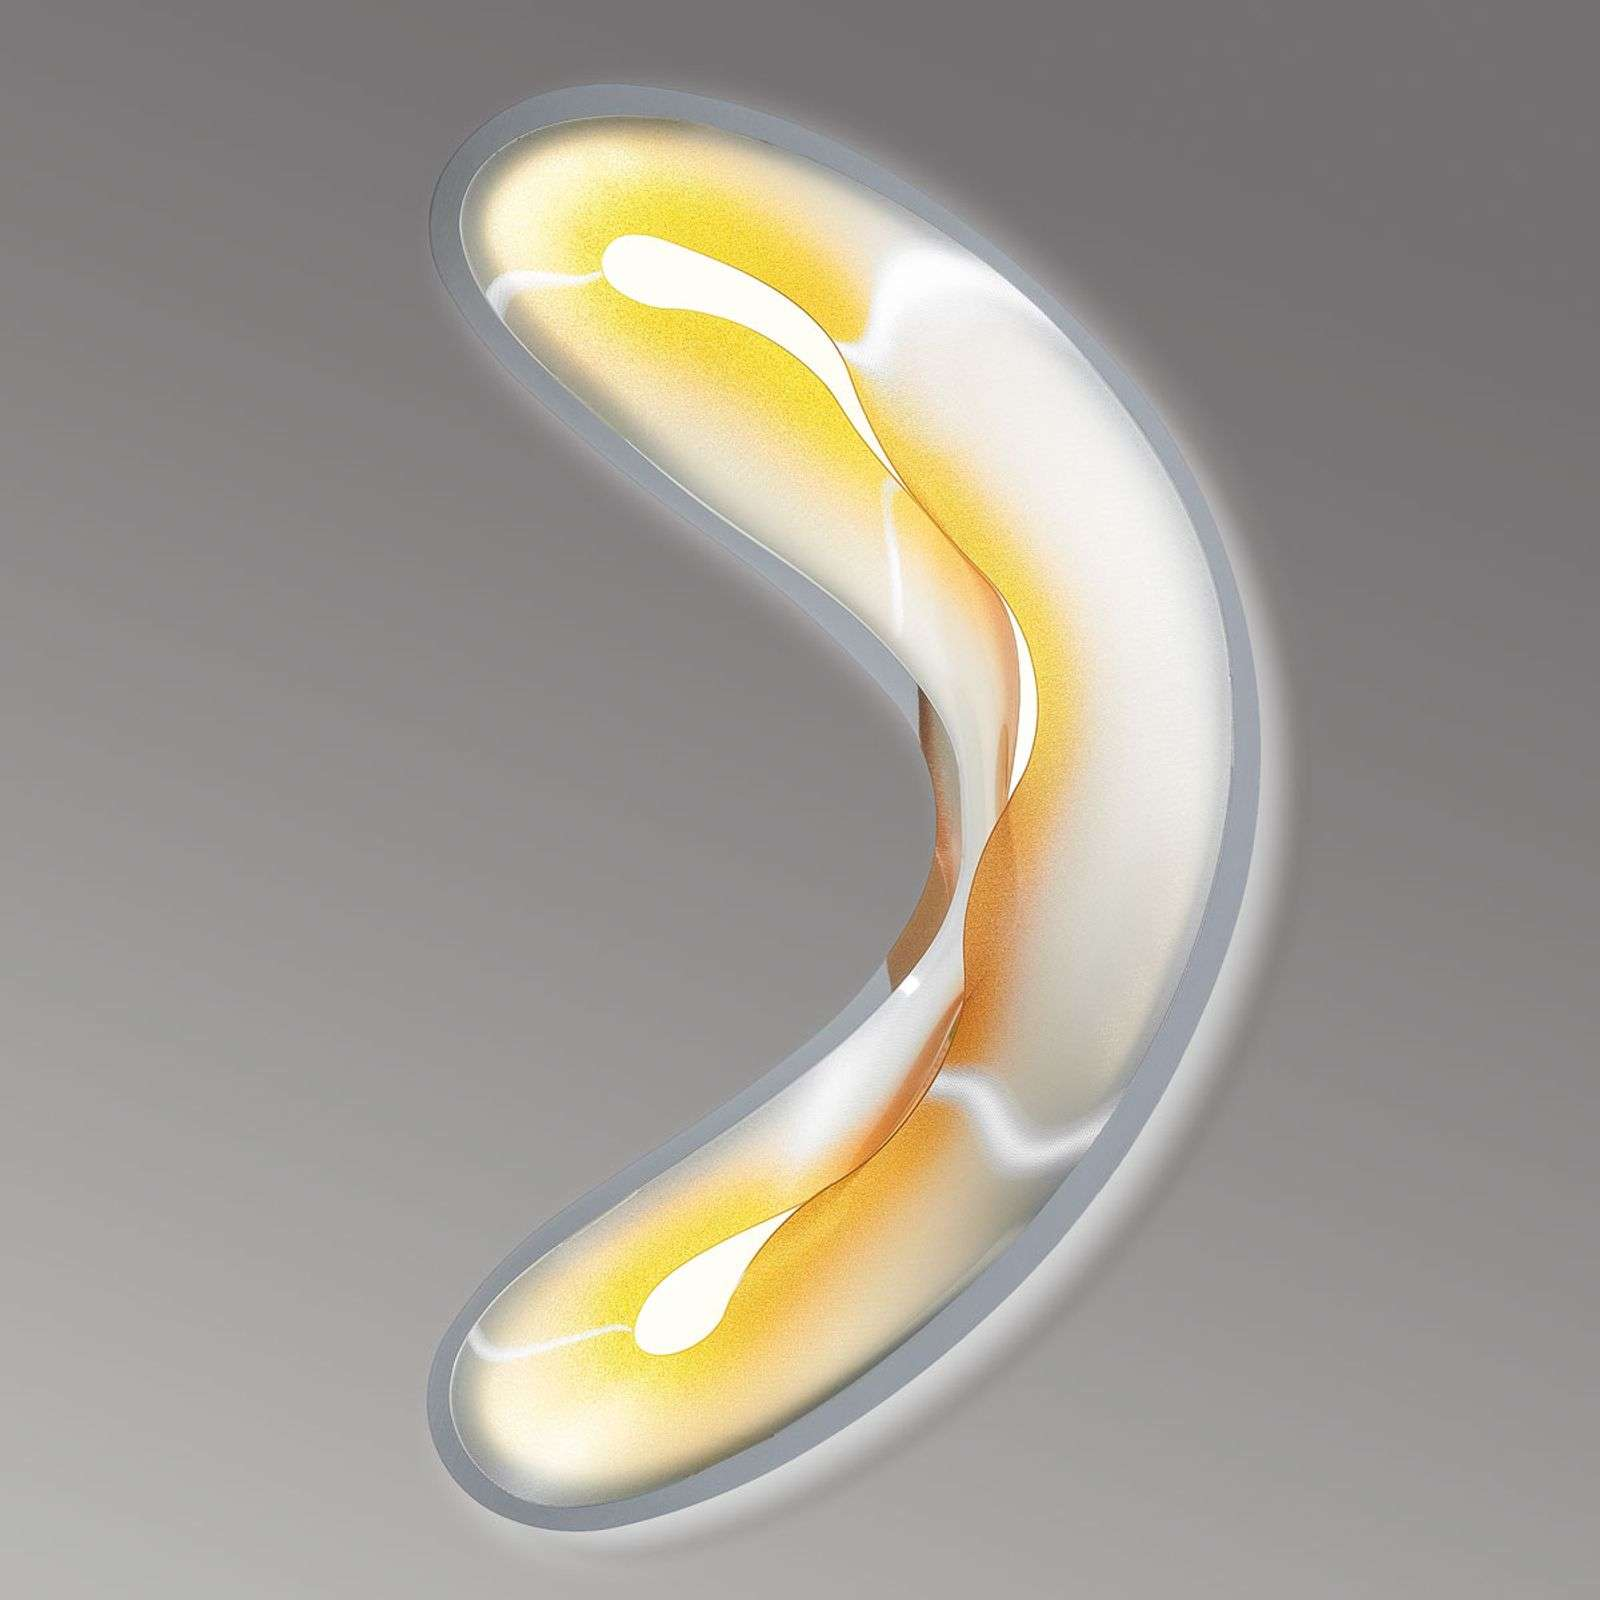 Slamp Crocco M - aplique LED, amarillo